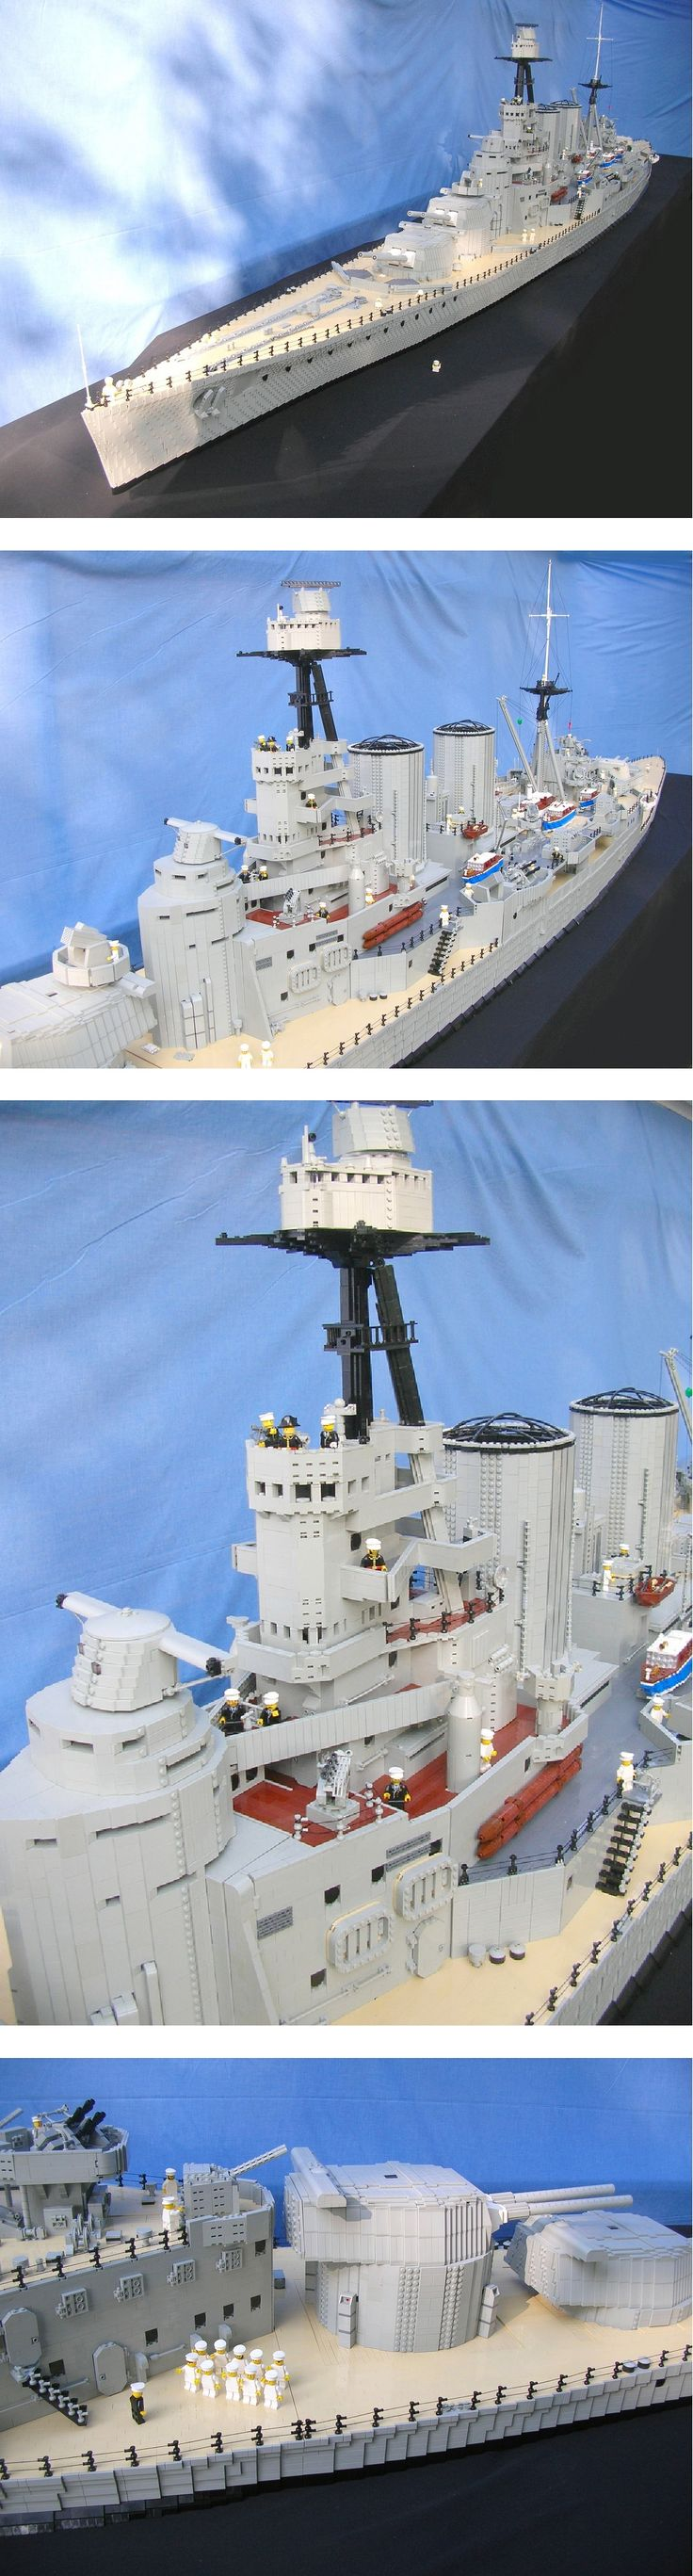 Lego 'HMS Hood' model - by Ed Diment (Lego Monster), via Flickr;  other photos on Flickr show the model in progress